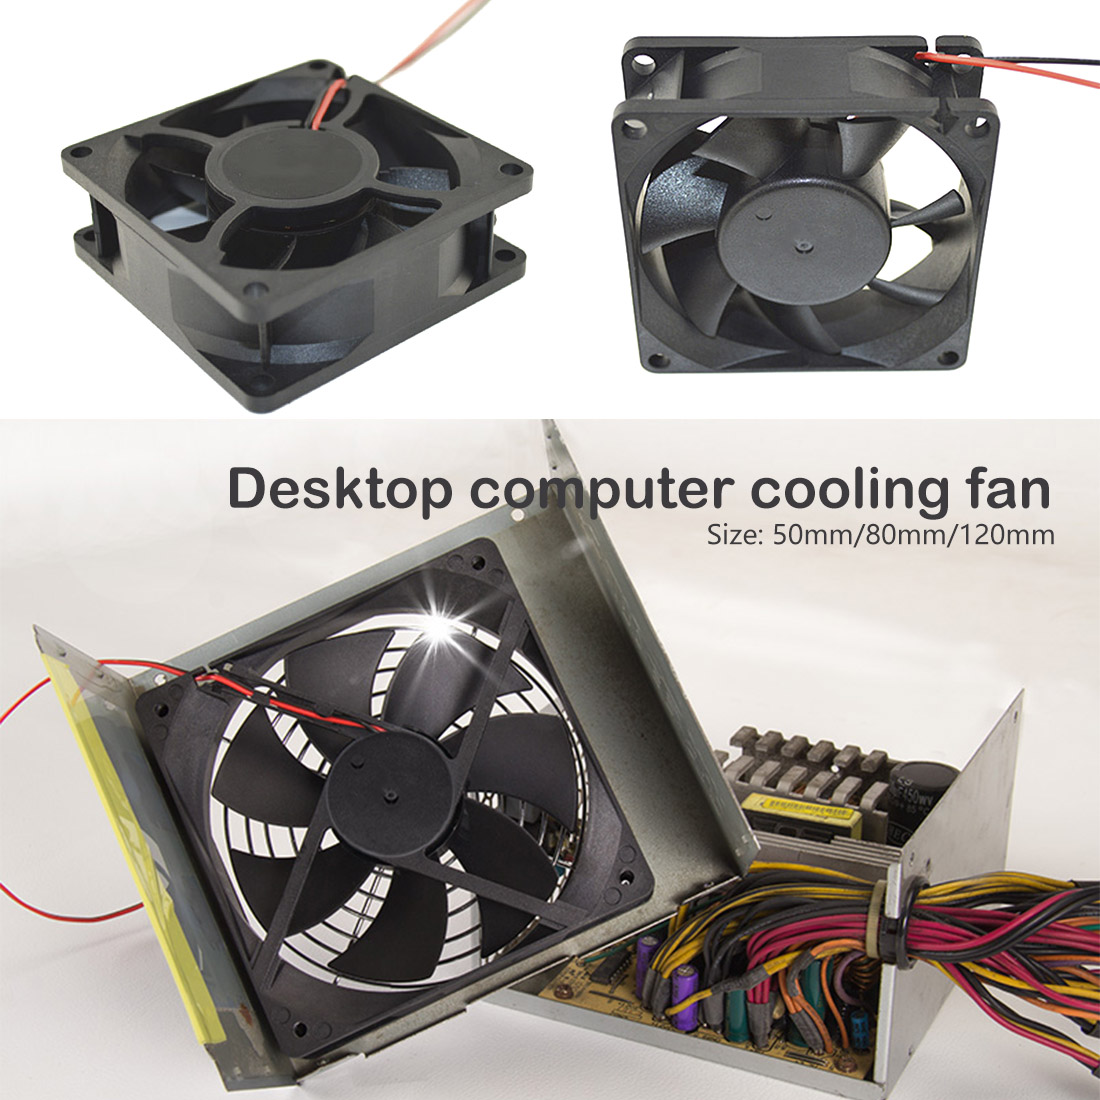 Portable Computer <font><b>Fan</b></font> Cooler 50mm <font><b>80mm</b></font> 120 mm <font><b>12V</b></font> 2 Pin <font><b>PC</b></font> CPU Cooling Cooler <font><b>Fan</b></font> for for Computer Case CPU Cooler Radiator image